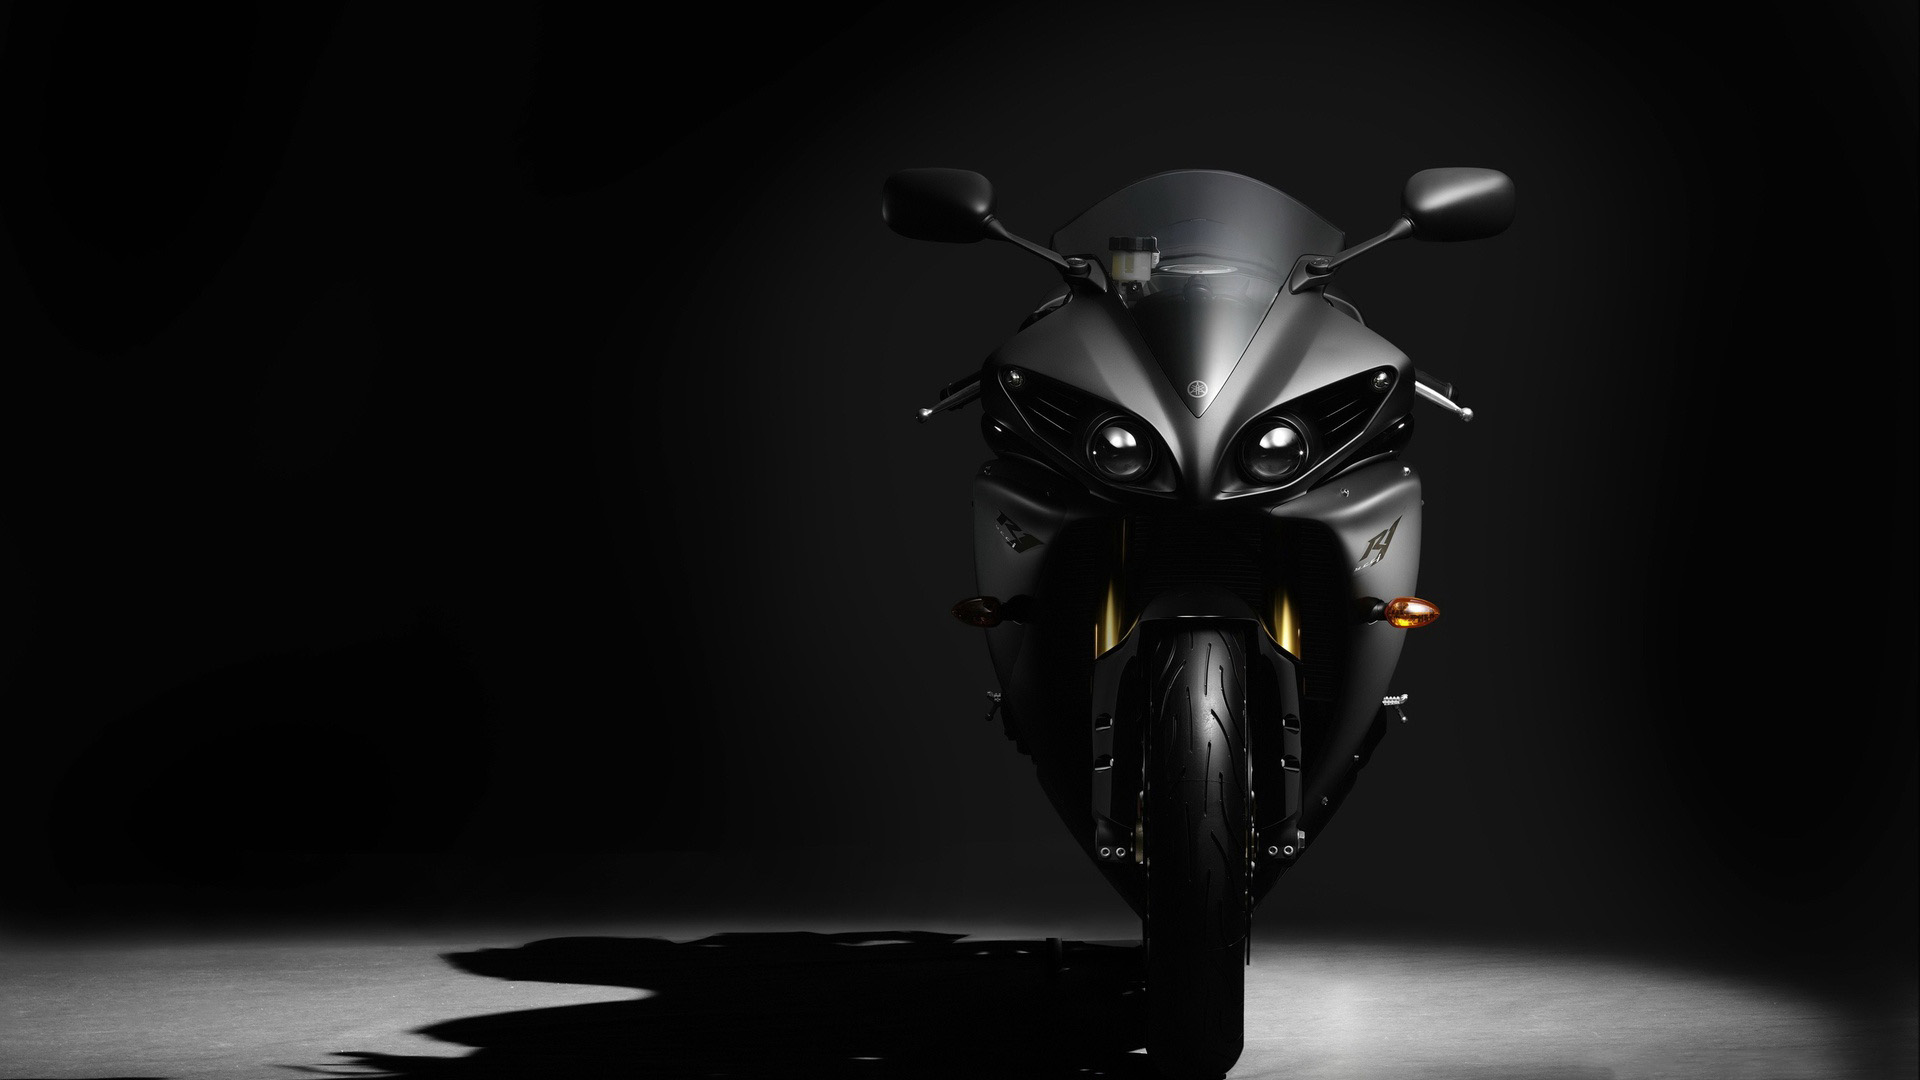 stylish bike Black background